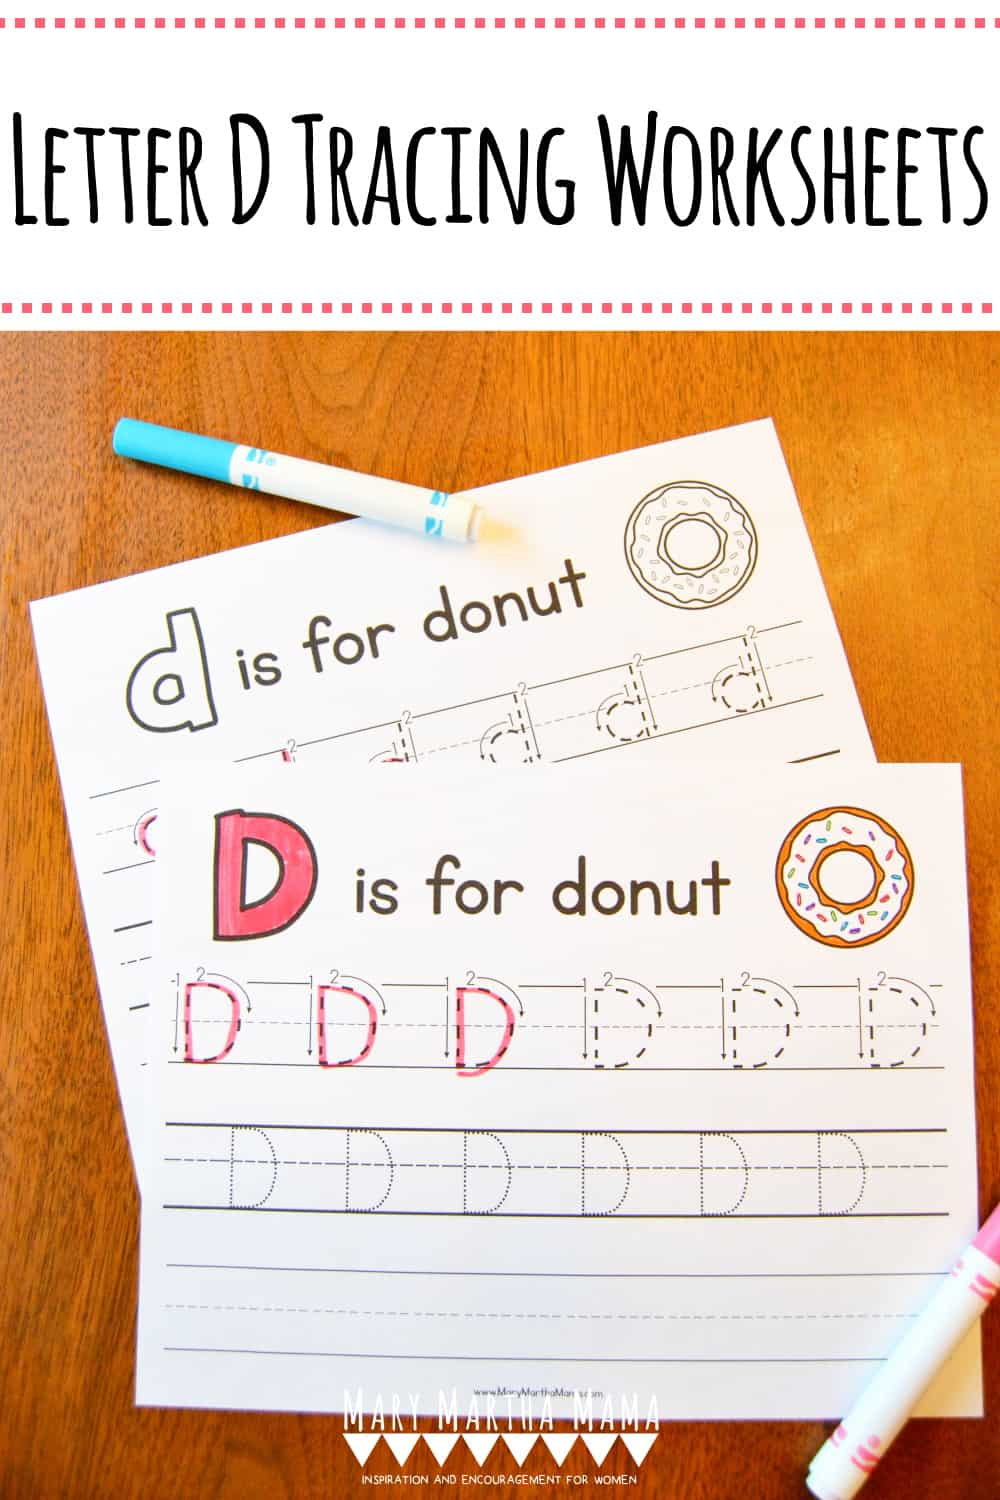 Is your child working on his or her handwriting?  Use these free printable Letter D Tracing Worksheets to help him or her practice with letter D.